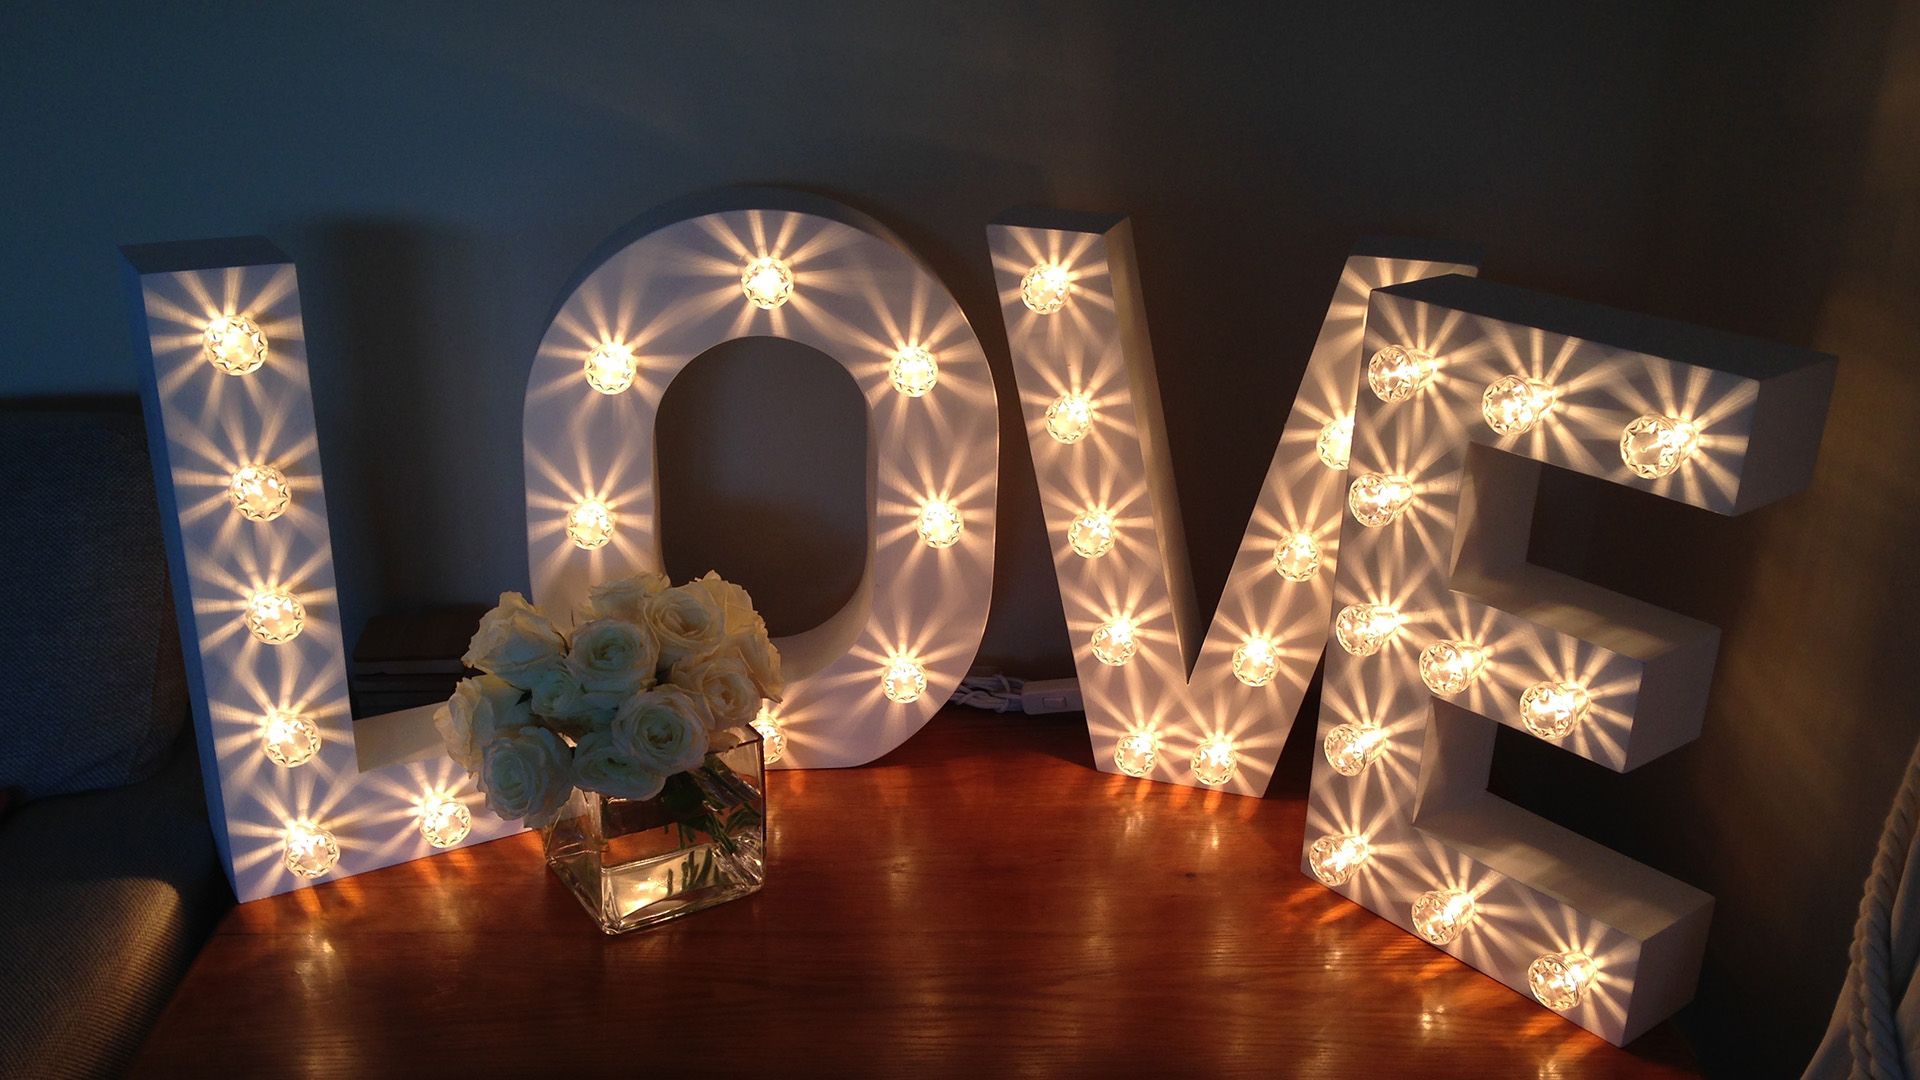 Written In Lights: Beautiful Light Up Letters Hire + Hearts & Shapes for for Weddings & Events